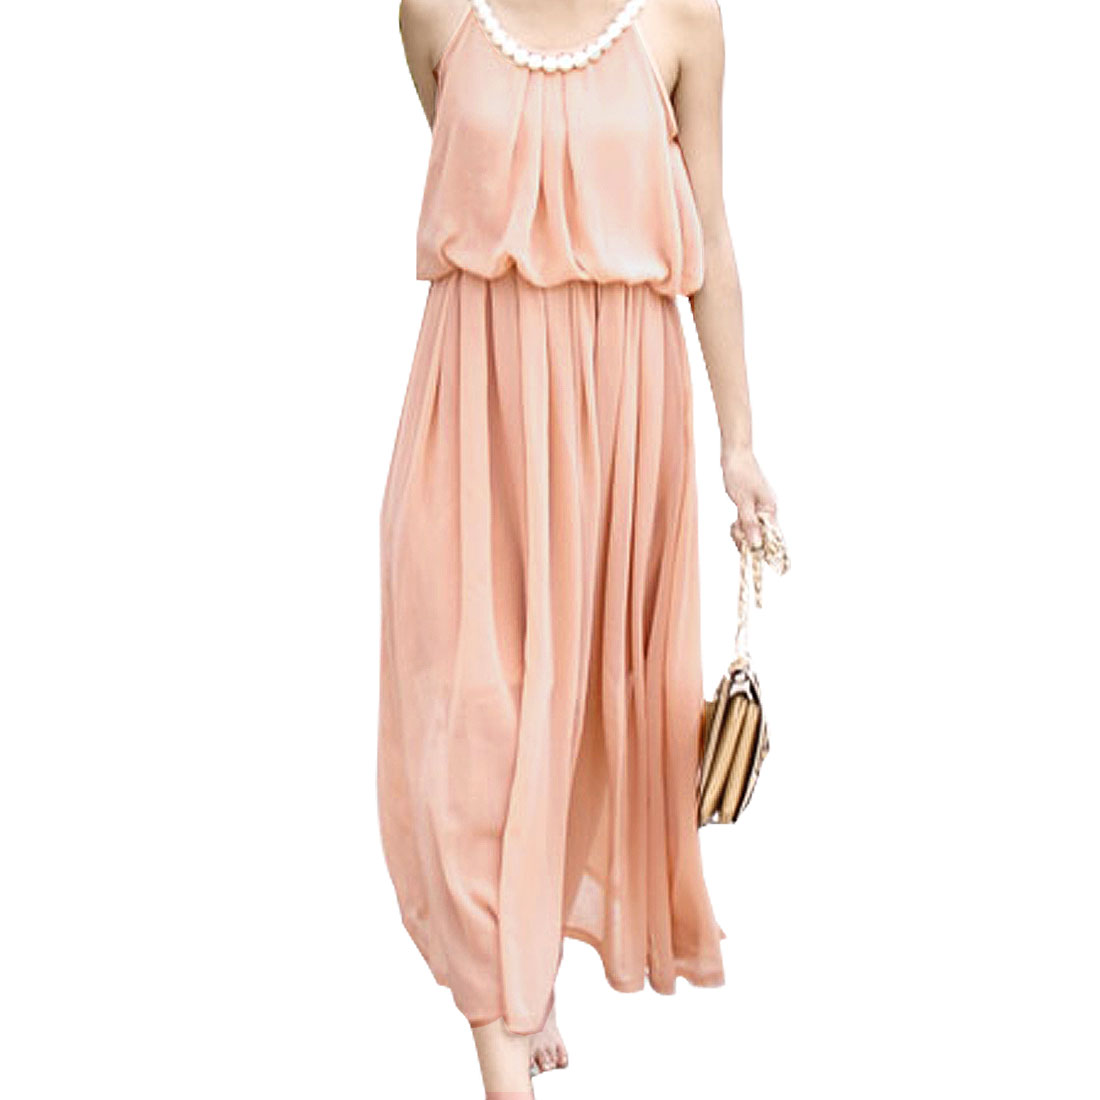 Light Pink Elastic Waist Full Length Cocktail Party Chiffon Dress for Ladies S